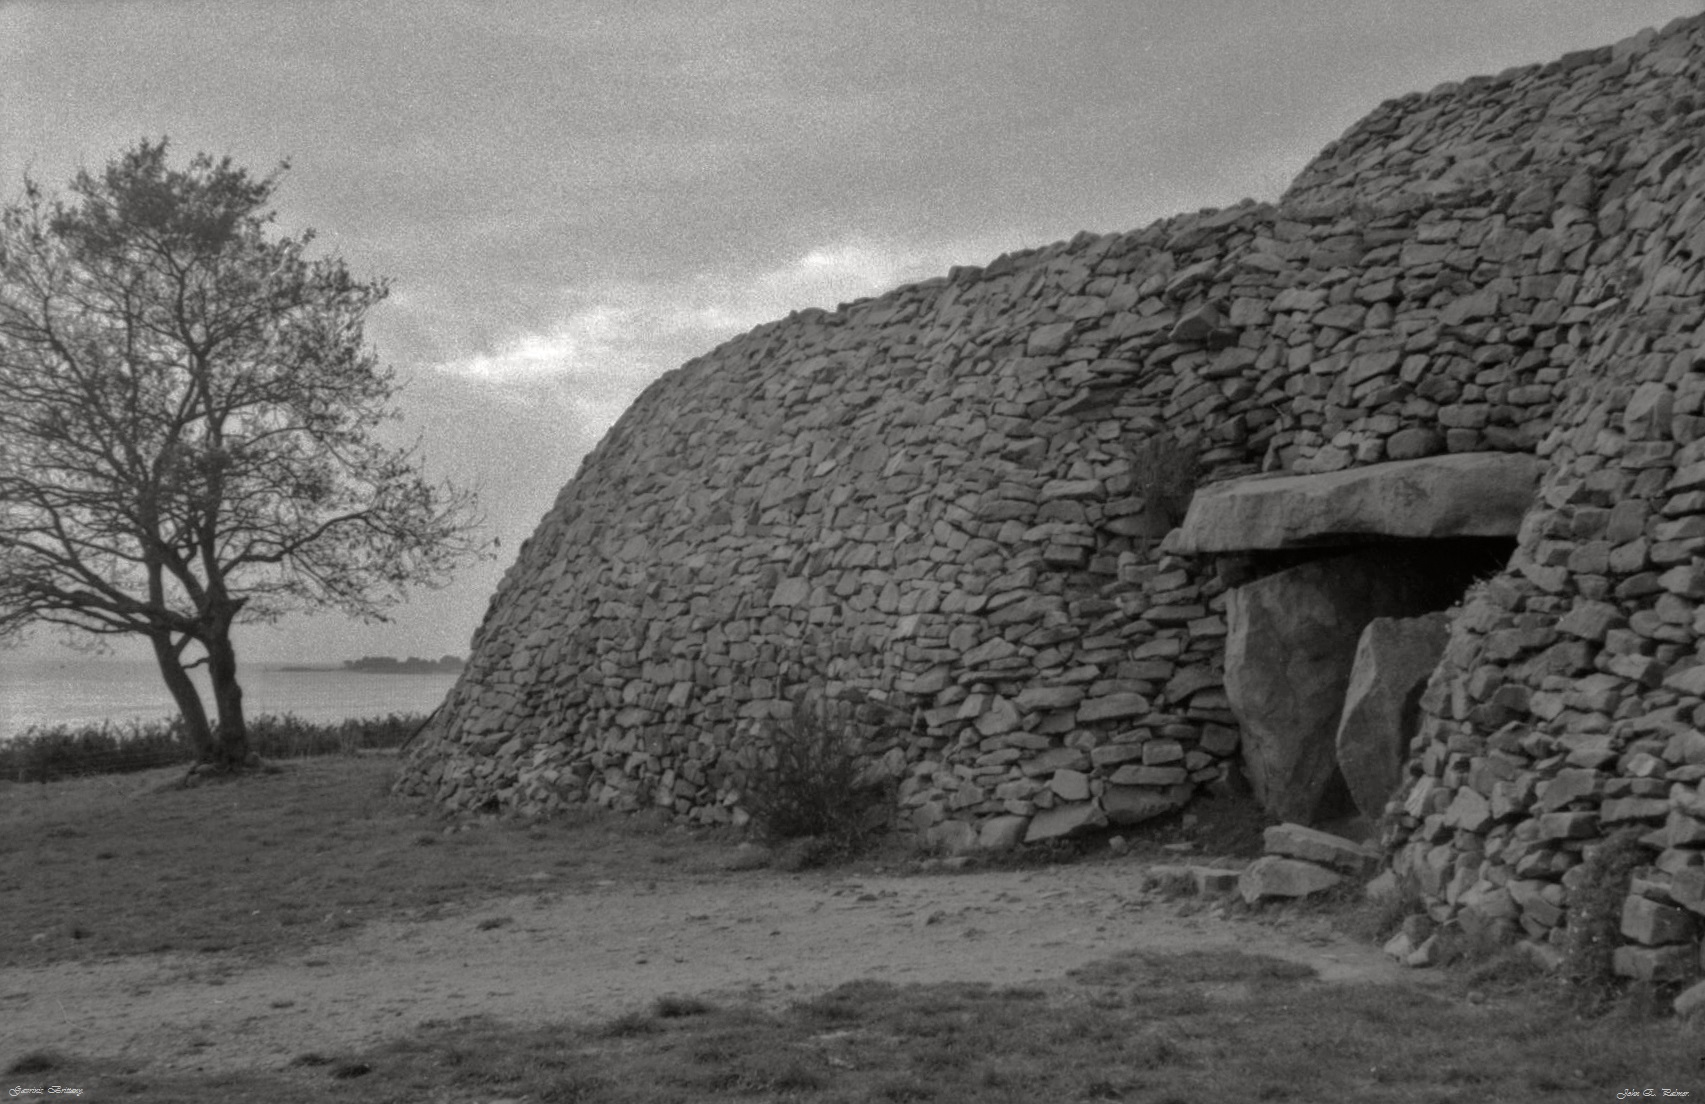 Facade of Gavrinis chambered cairn at Entry to passage.    Photo copyright: John Palmer